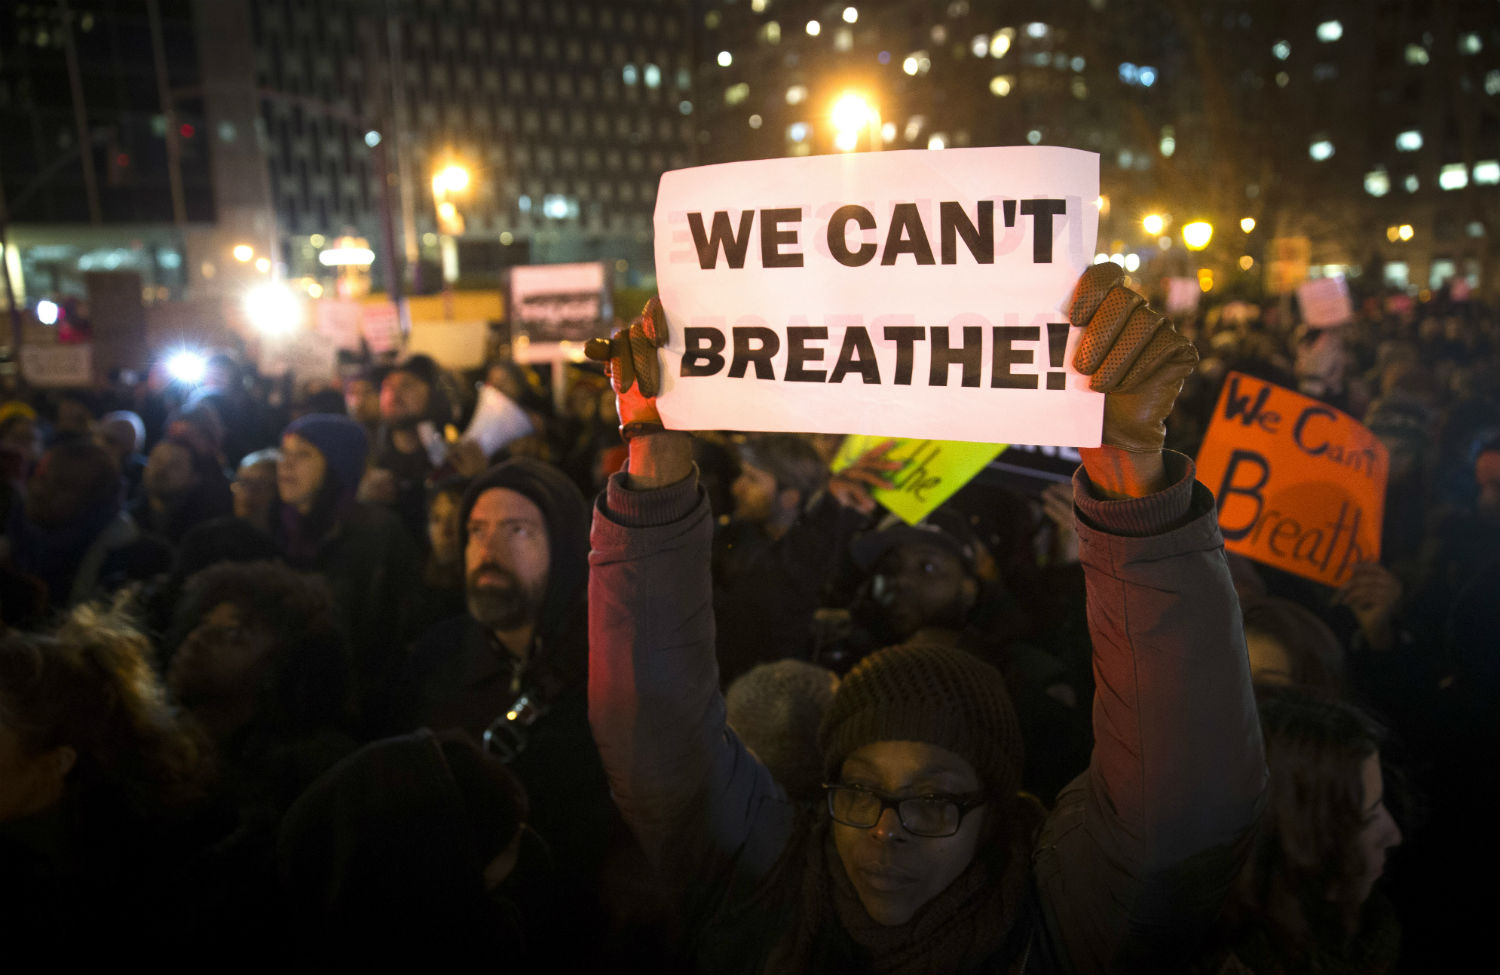 Voting Against Climate Change >> 'We Can't Breathe': The Movement Against Police Brutality Is Just Beginning | The Nation